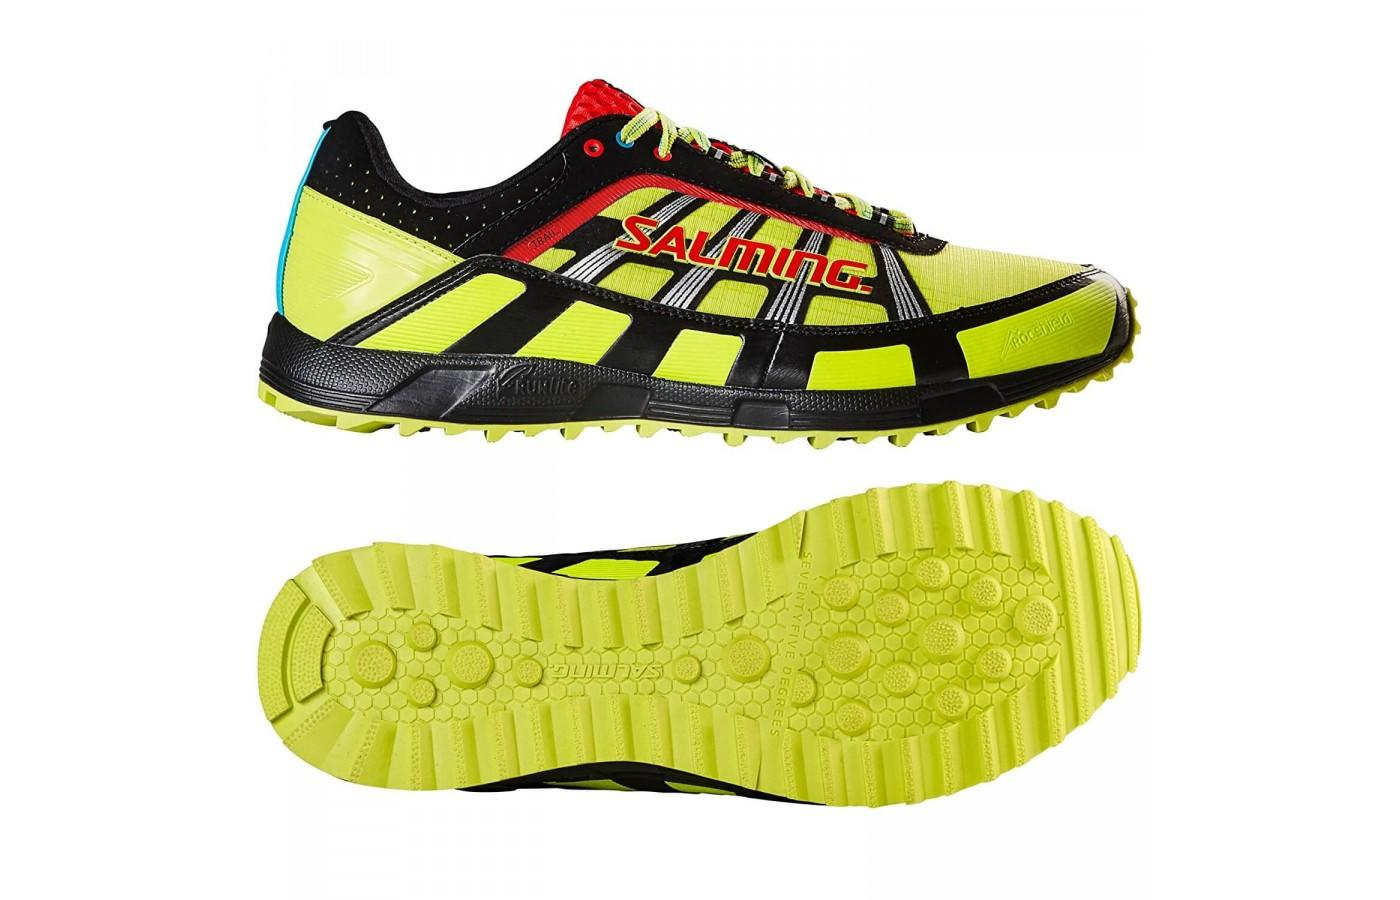 The stylish colors and lugged outsole are two of many great features about this shoe.